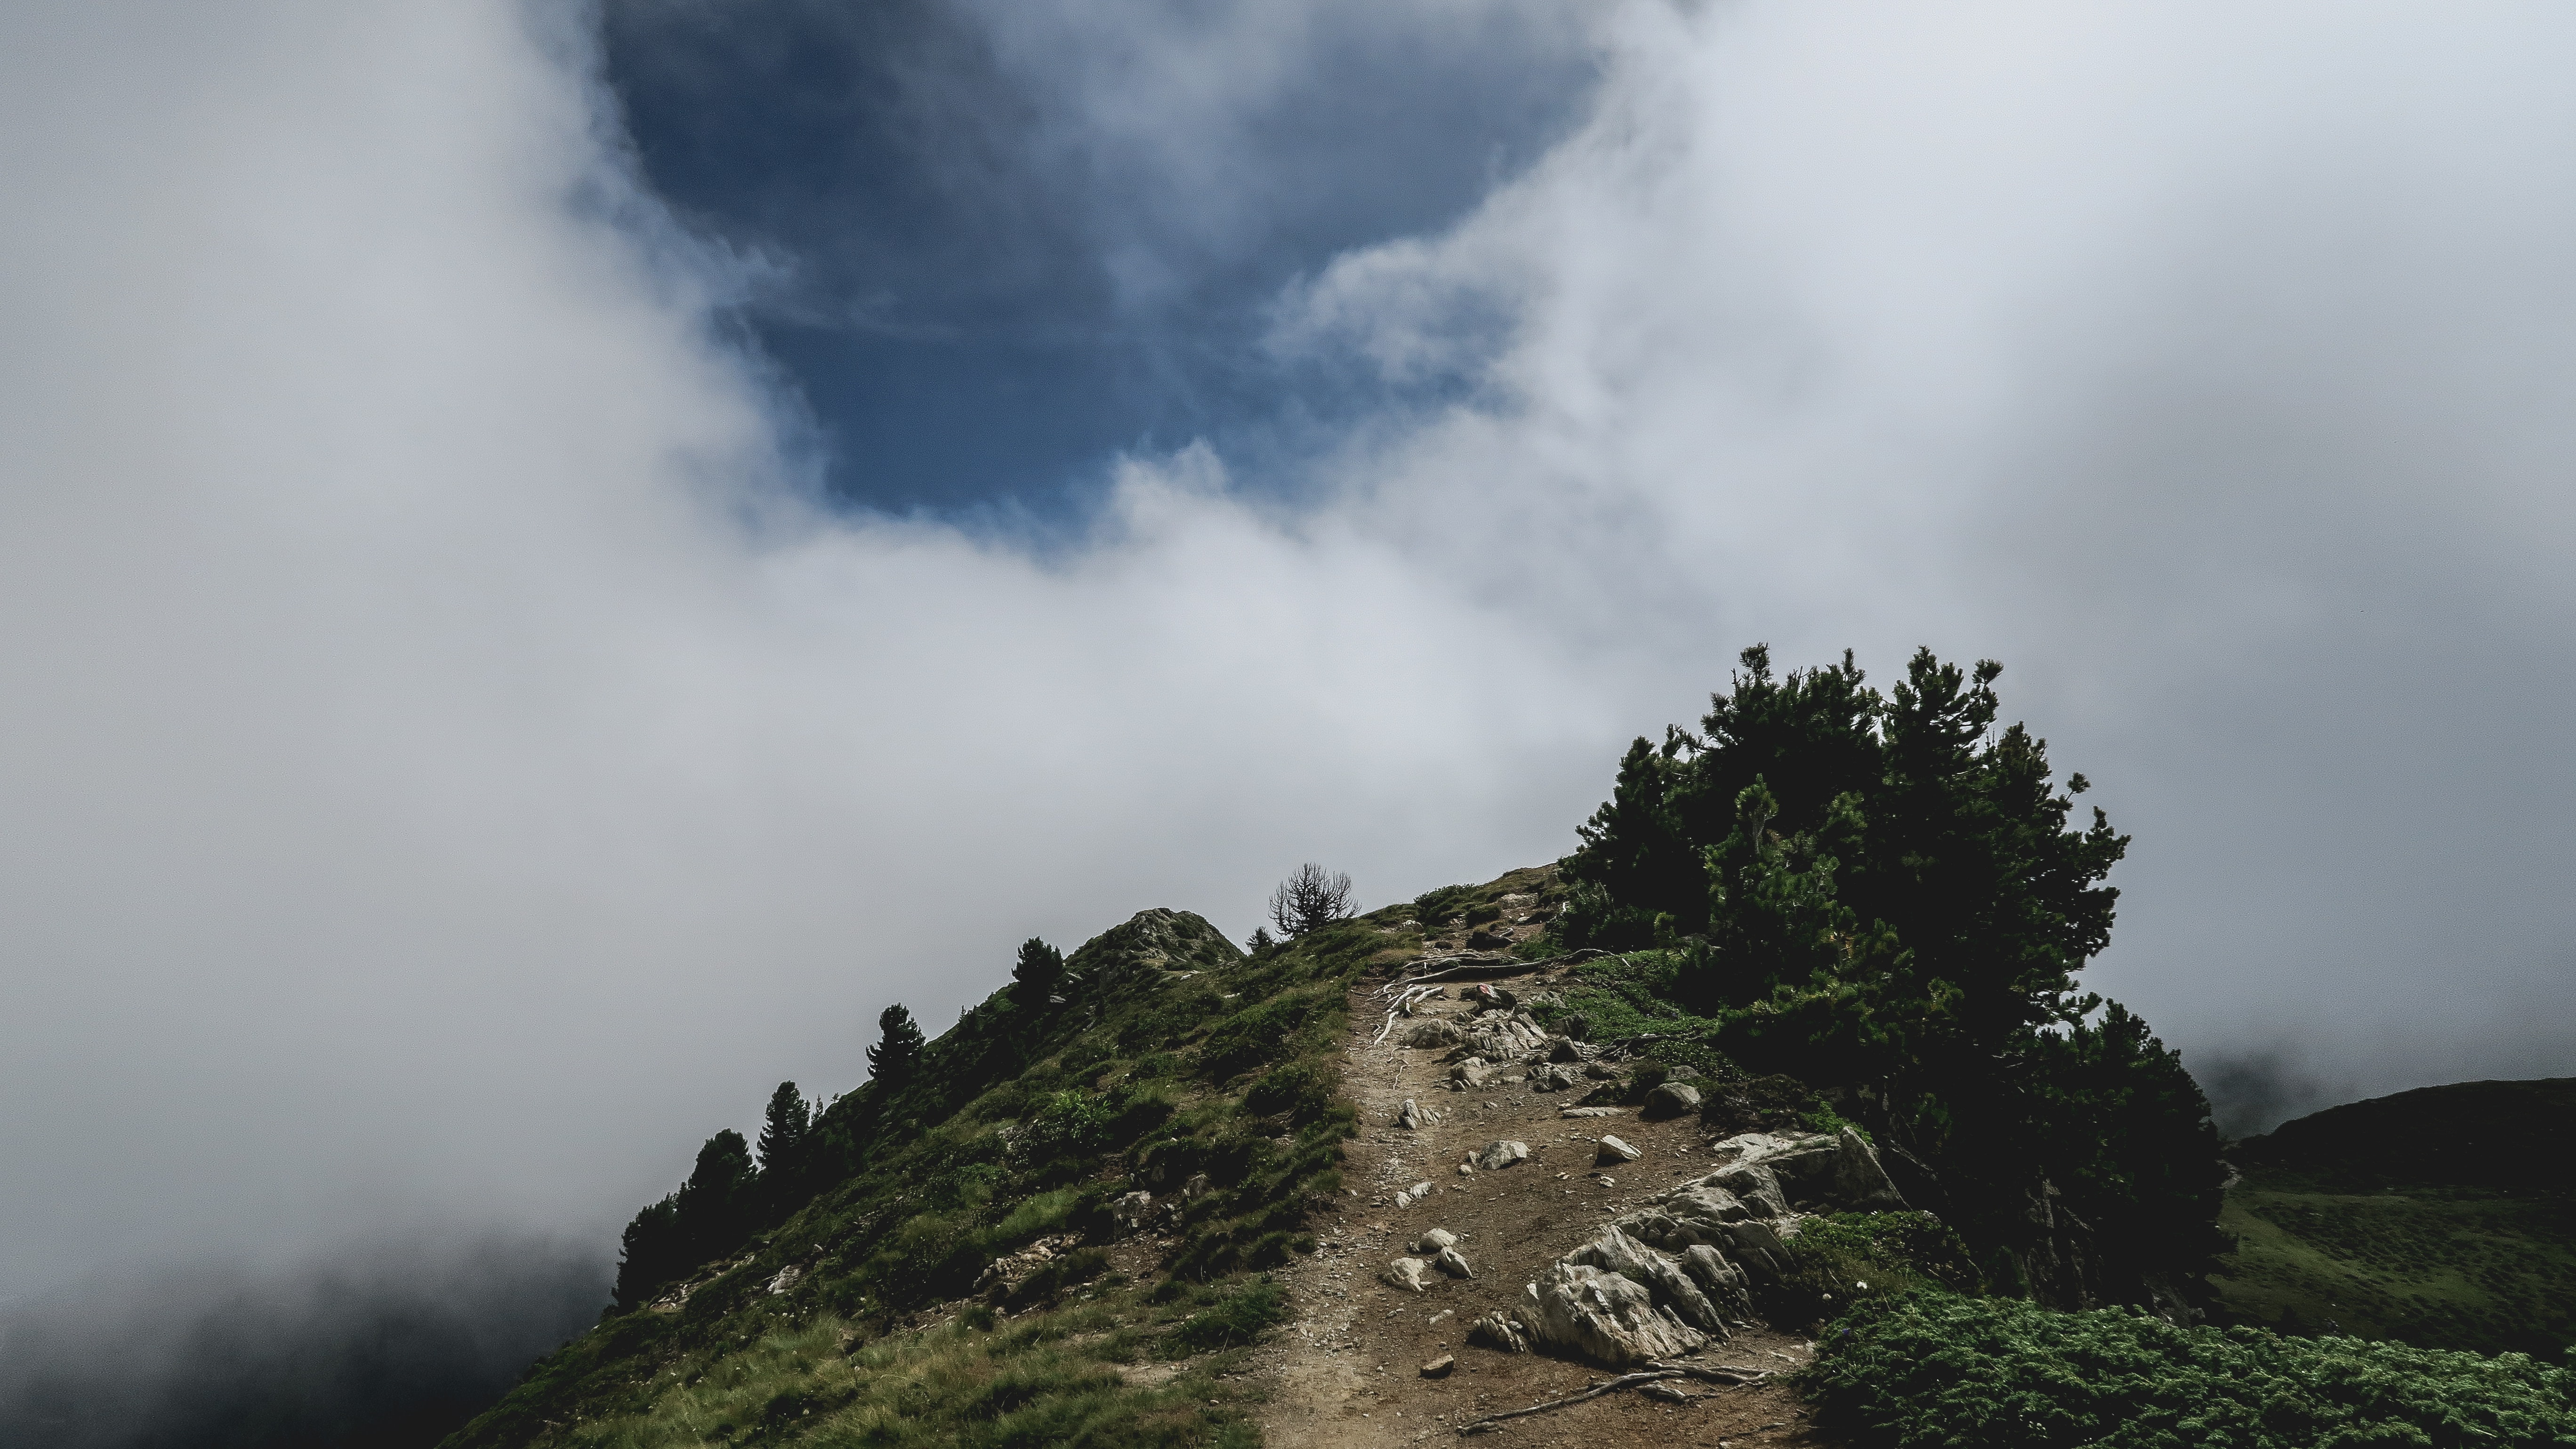 Rocky hiking path on a grassy hillside leads to clouds